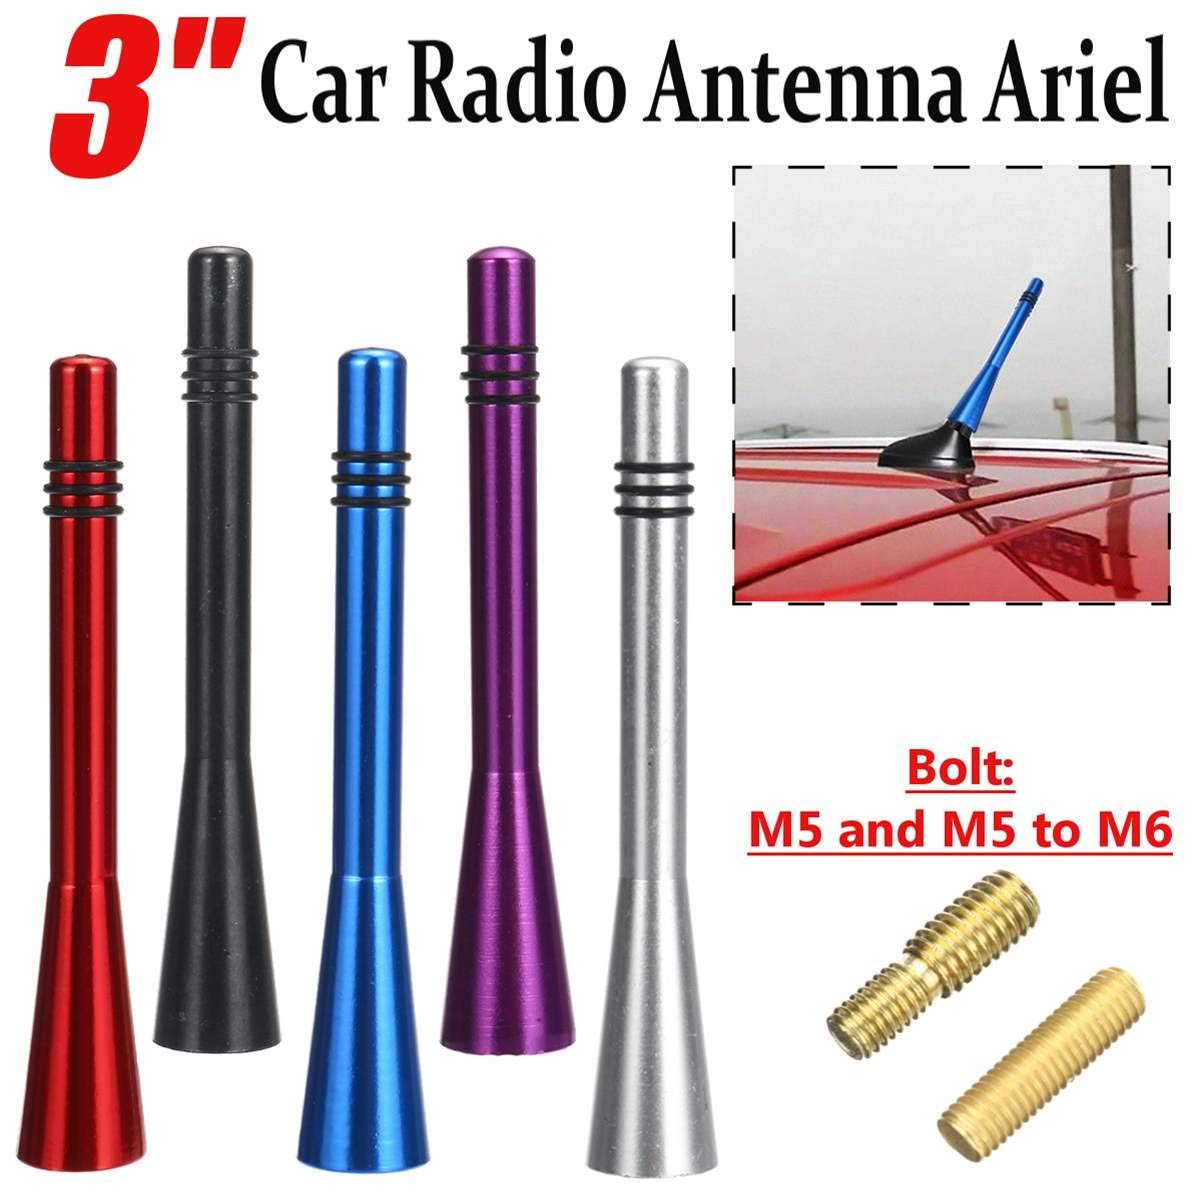 Gift-4Car Audio & Video Accessories 3 Car Antenna Ariel Stubby Bee Sting Mast Roof Arial FM Radio Aluminum Alloy 80mmx13mm Car Styling